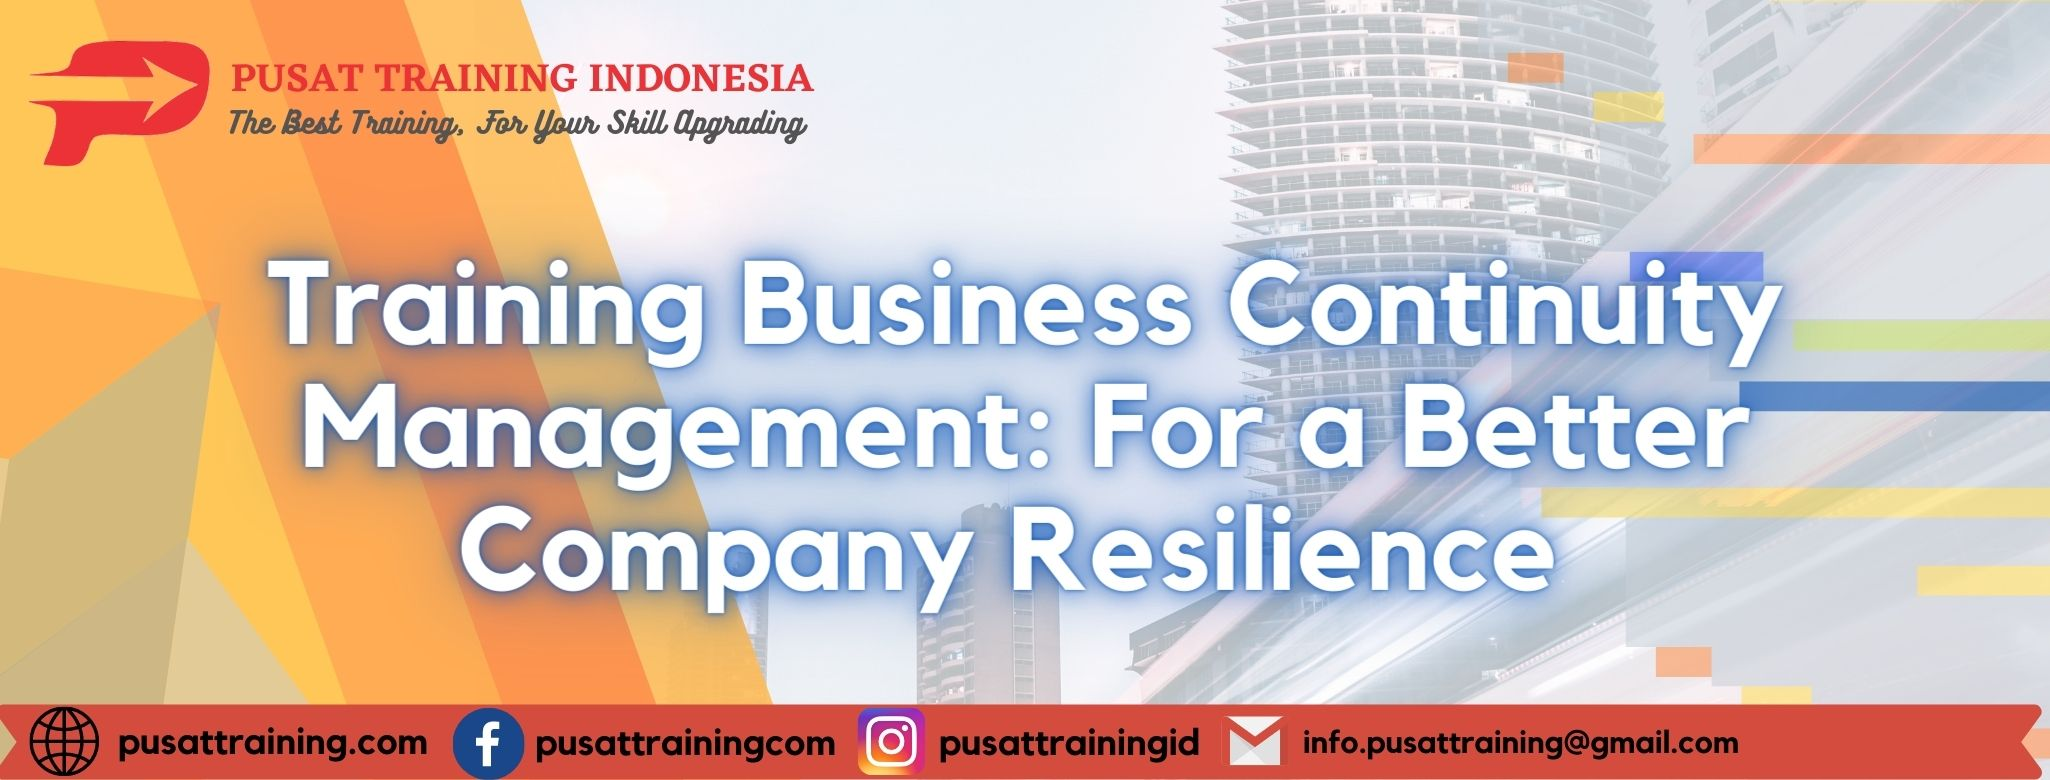 Training-Business-Continuity-Management_-For-a-Better-Company-Resilience